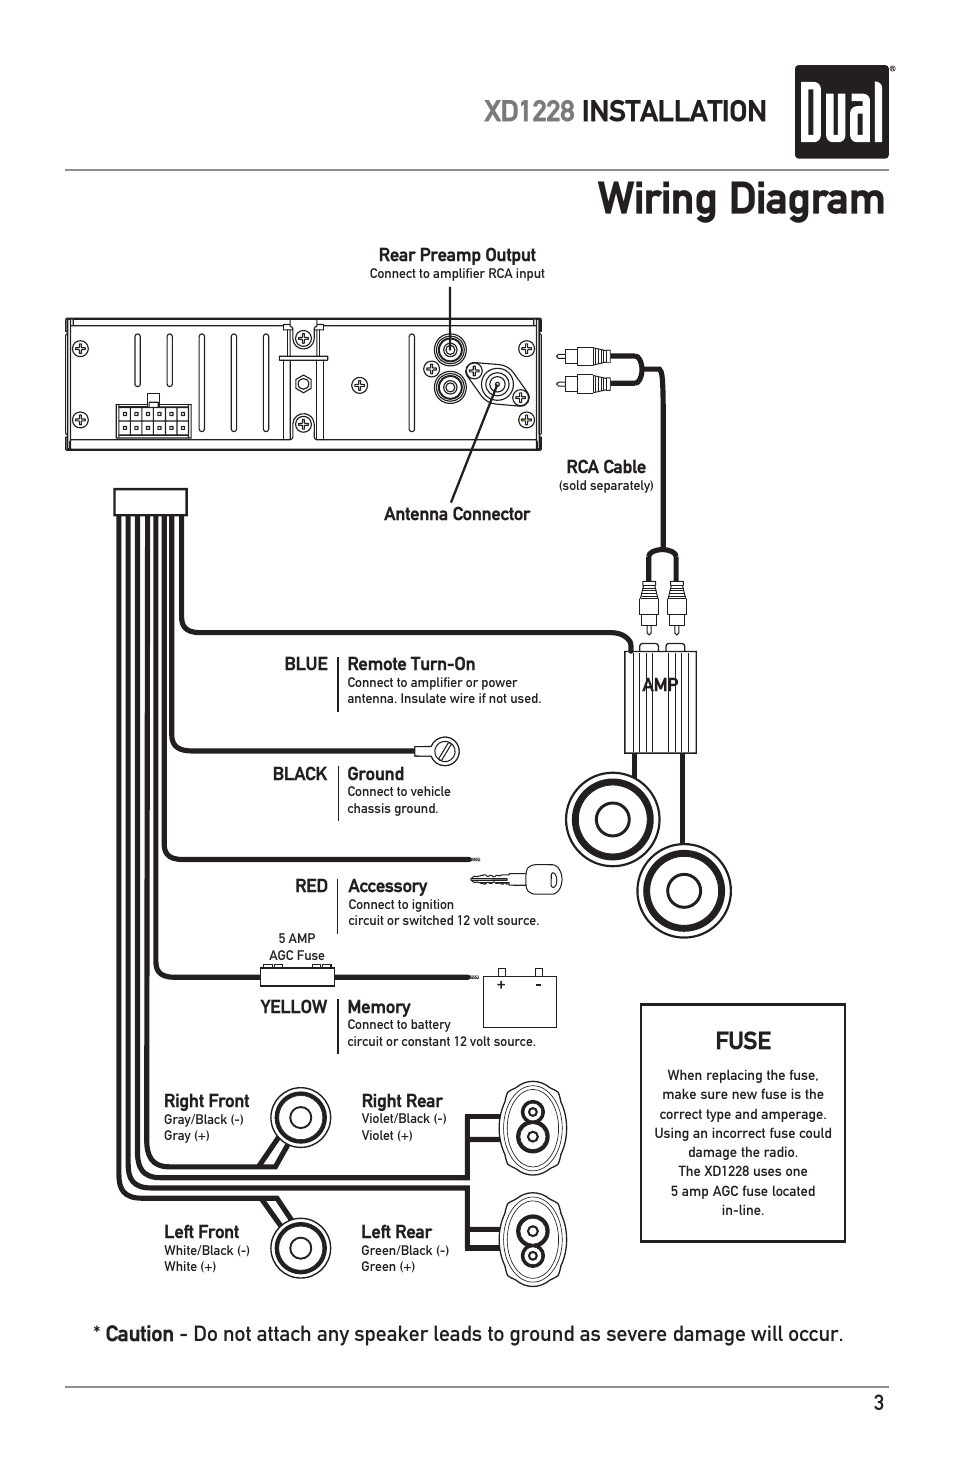 dual xd1228 page3 wiring diagram, xd1228 installation, fuse dual xd1228 user dual stereo wiring harness at mr168.co